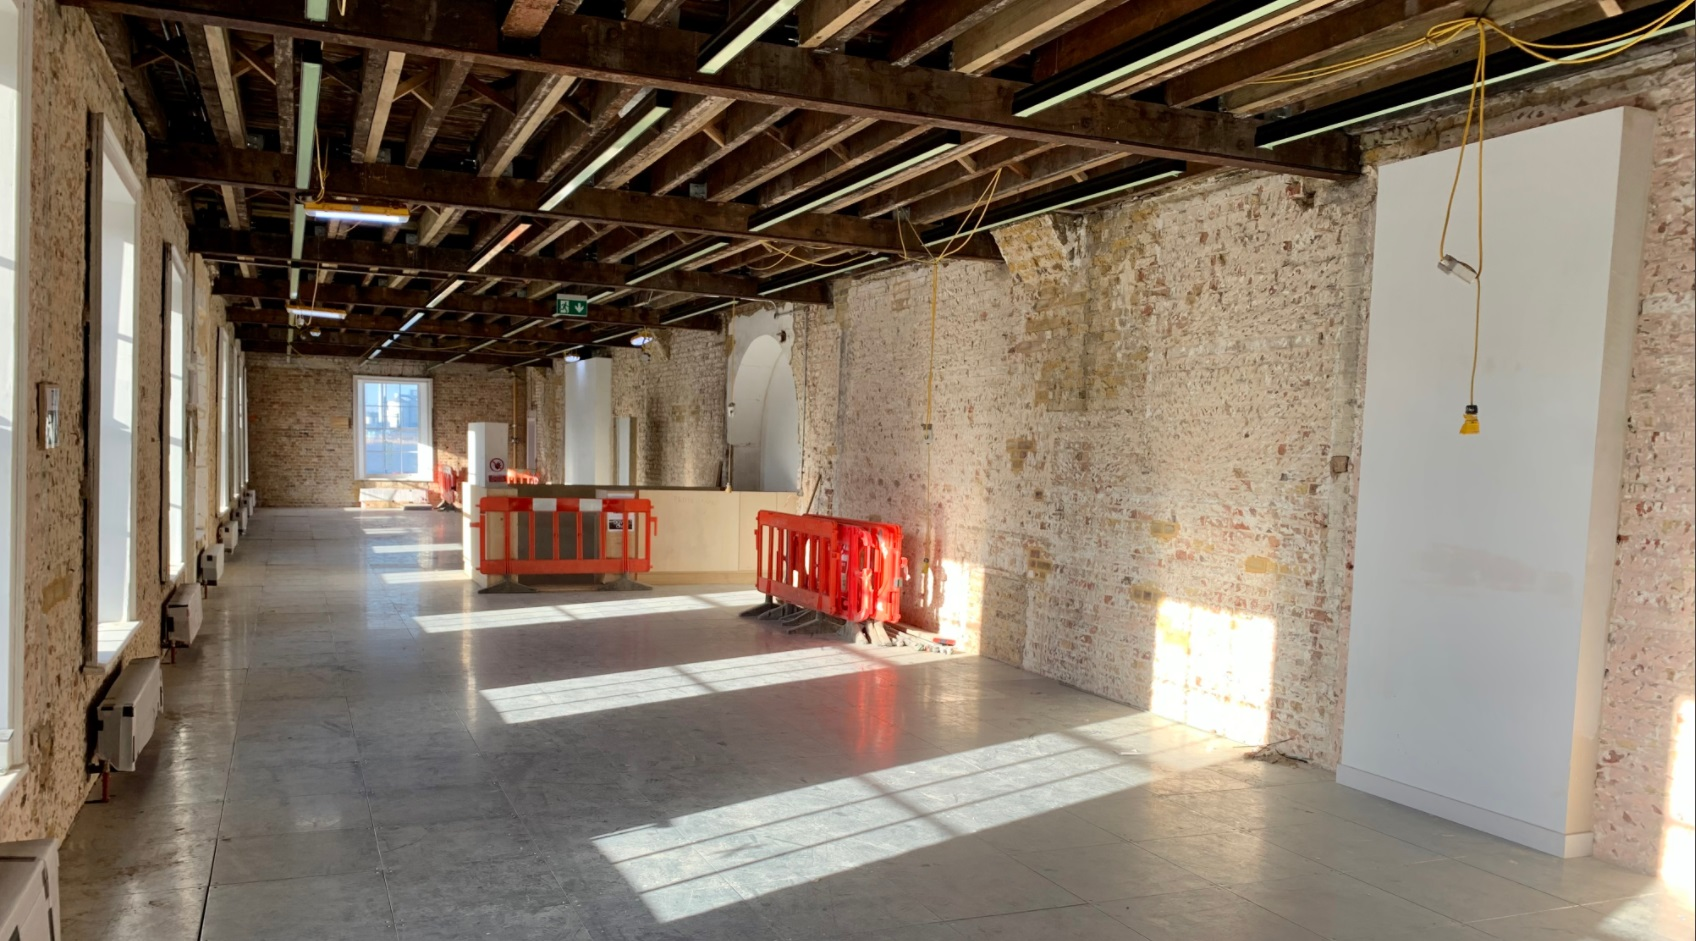 Woolwich Works cultural centre reveals images: Spring 2021 opening planned